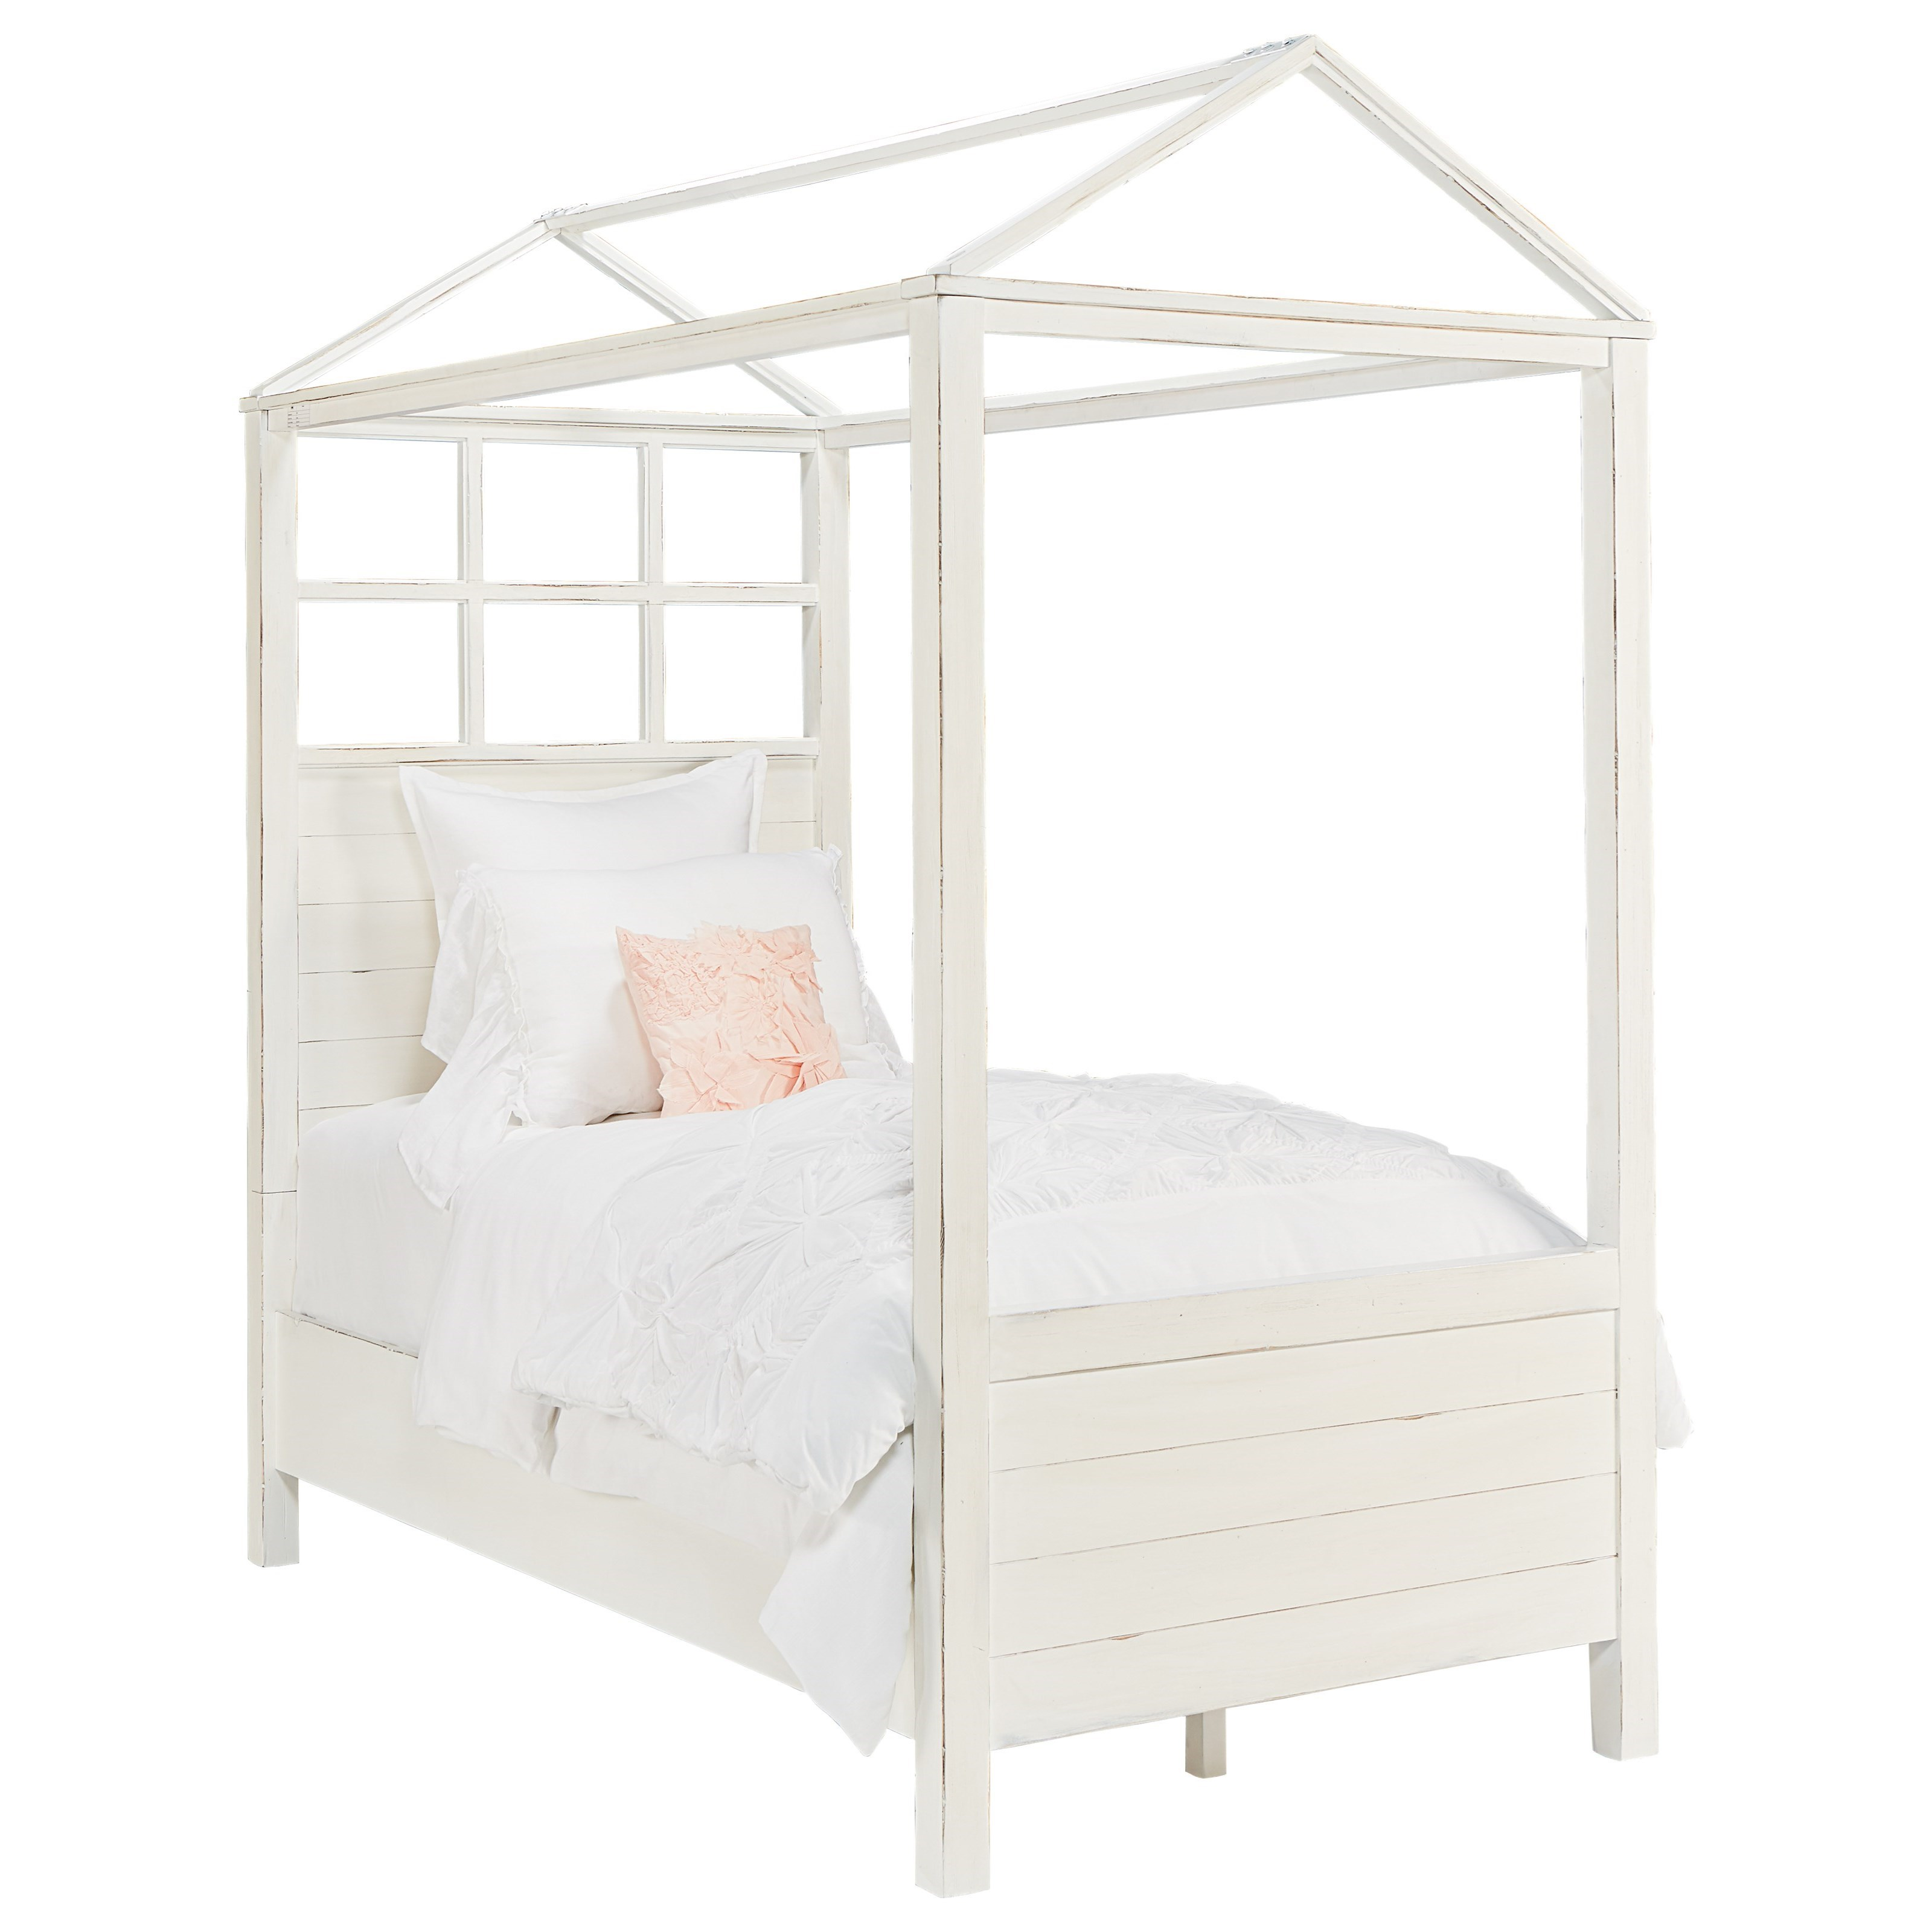 Playhouse Twin Canopy Bed By Magnolia Home By Joanna Gaines Wolf And Gardiner Wolf Furniture